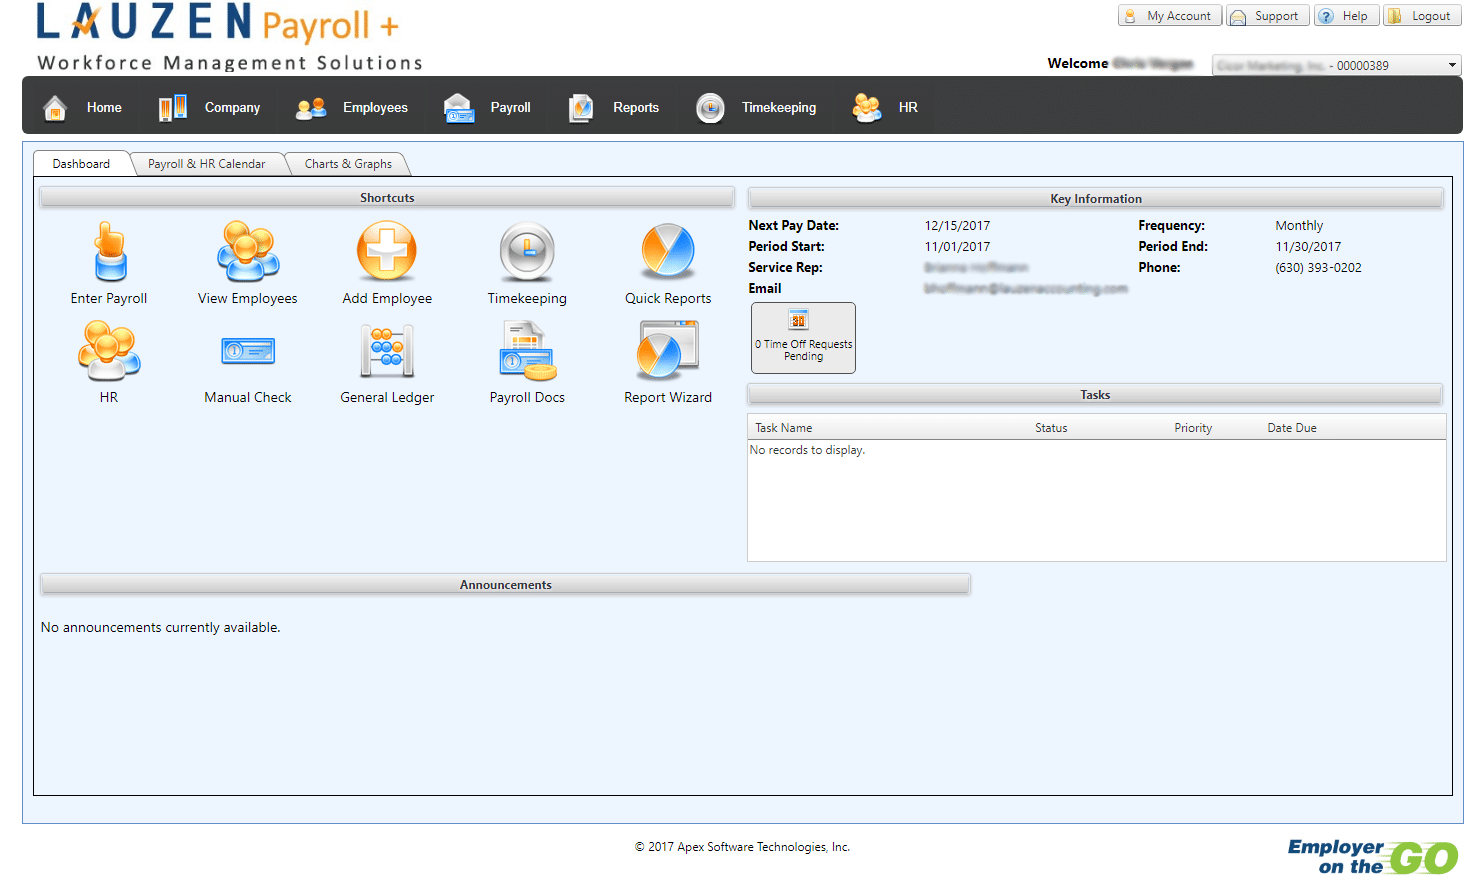 Lauzen Payroll - EOG Main Screen - Employer